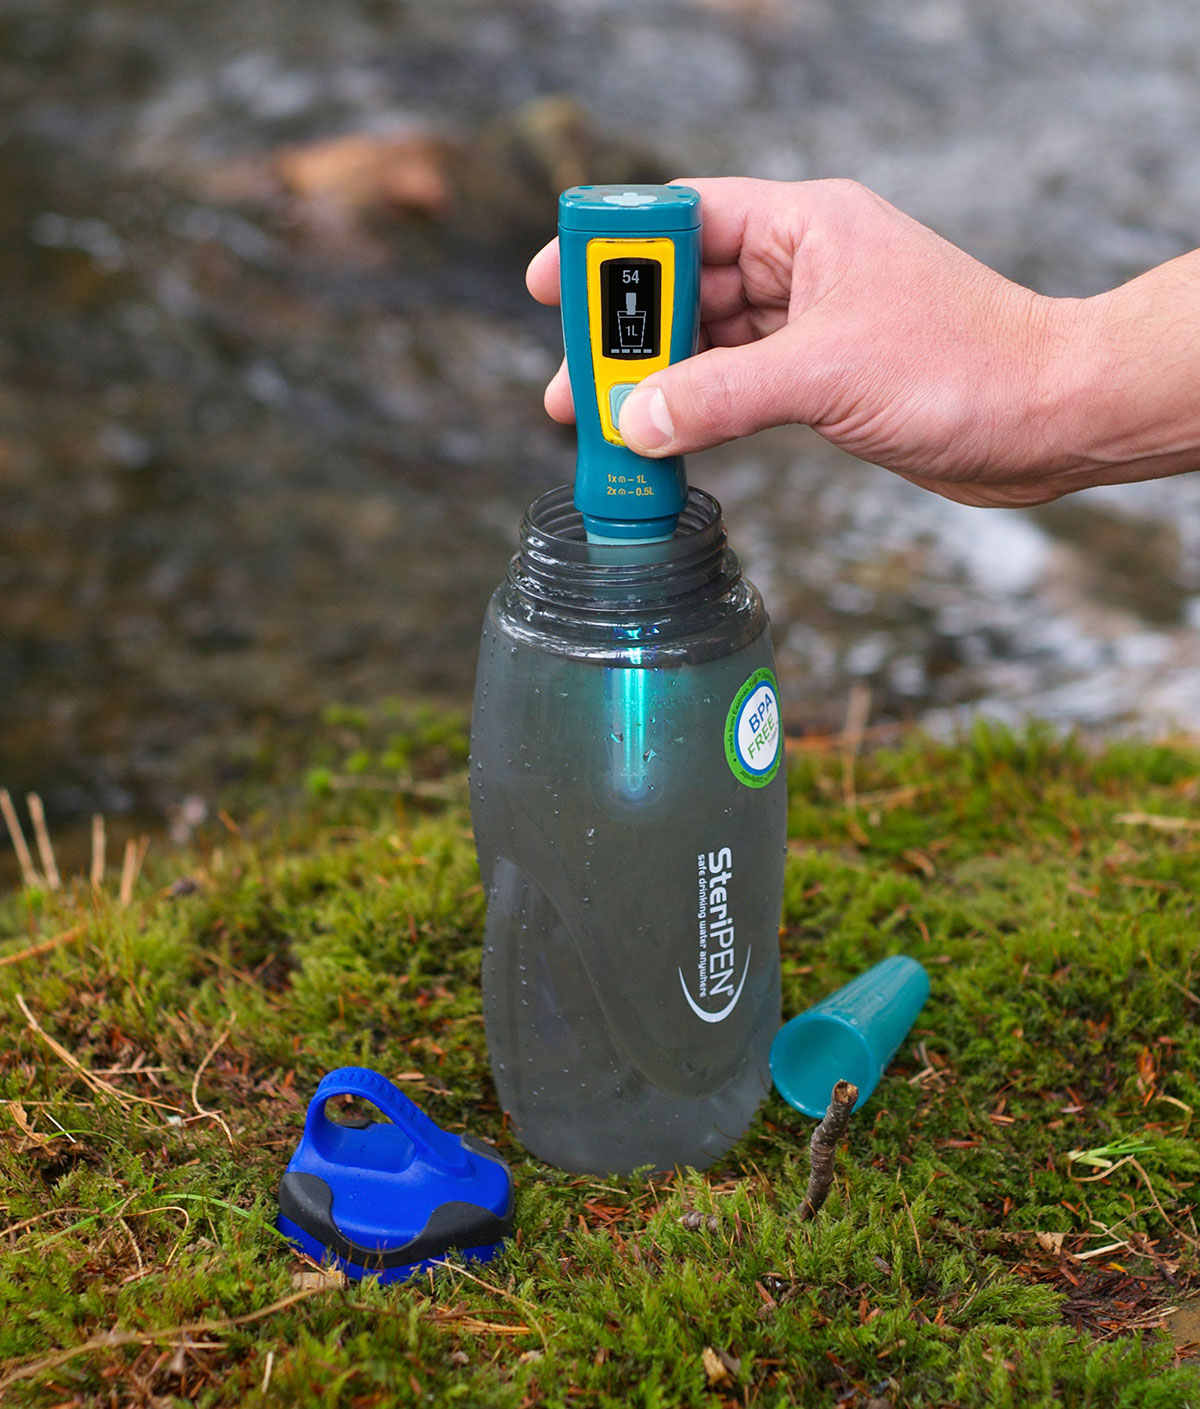 SteriPEN Ultra UV Water Purifier being used to sterilize water in a bottle next to a running stream